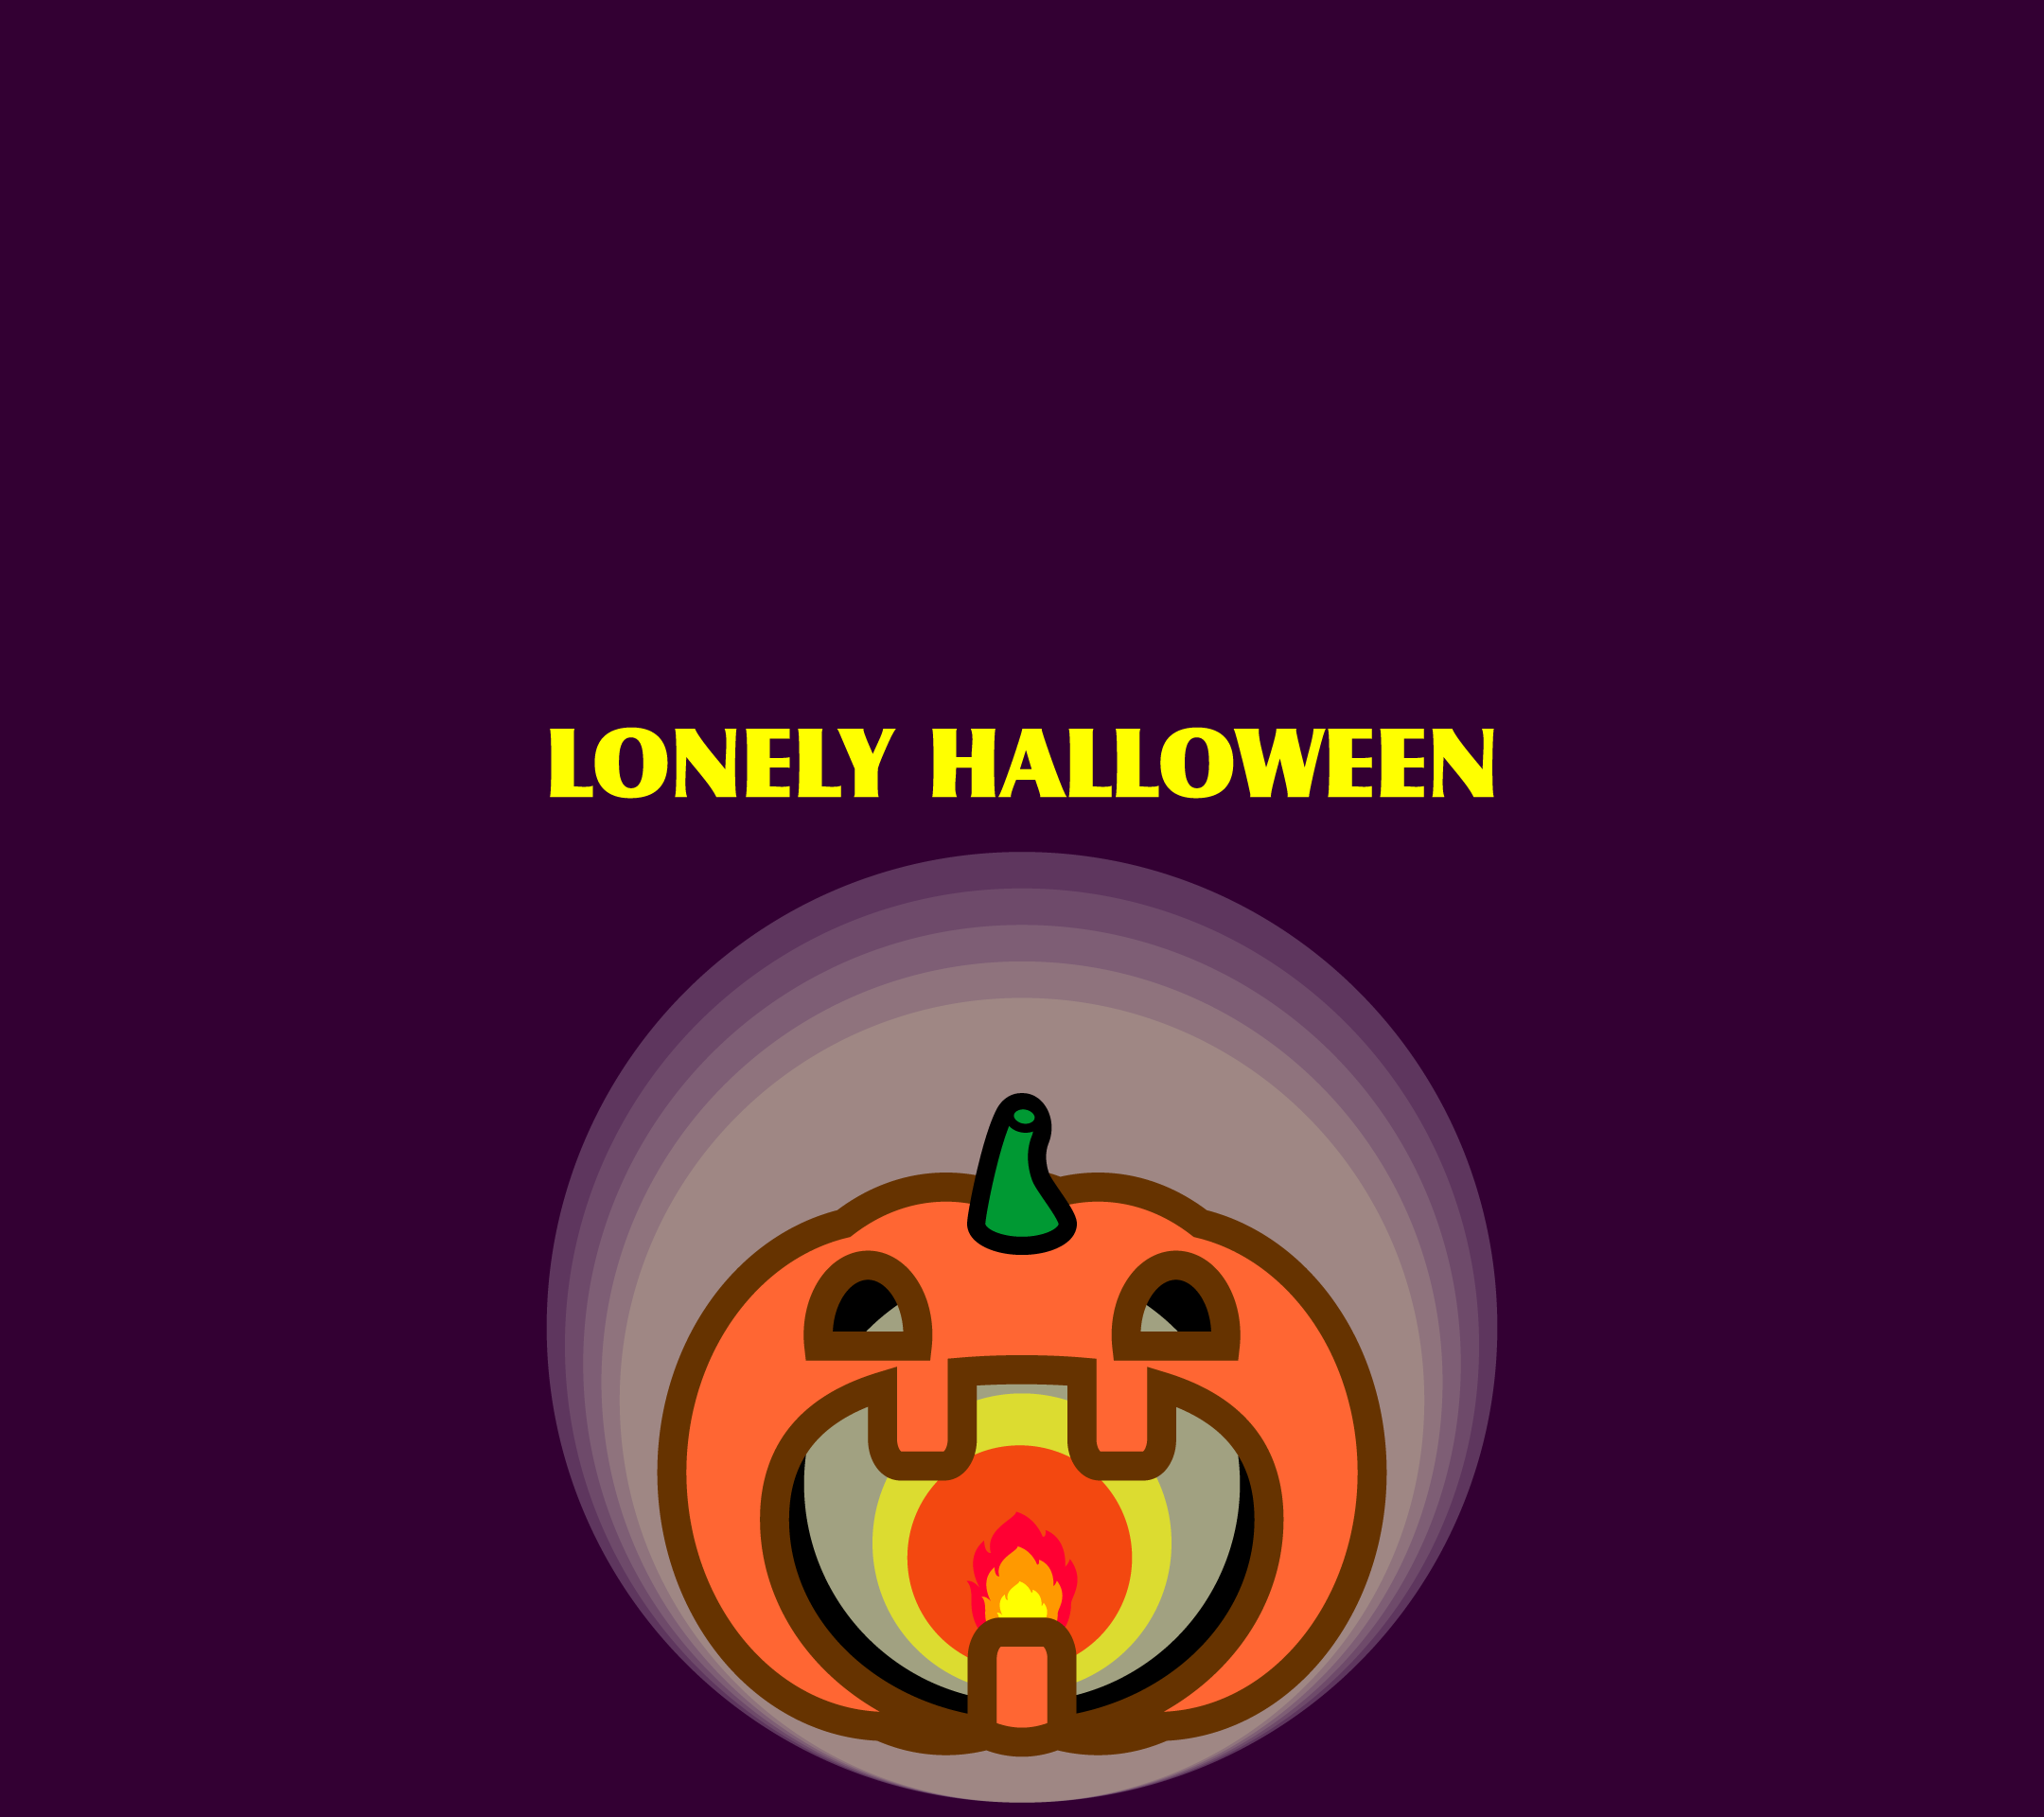 wallpaper2_lonely-halloween-android